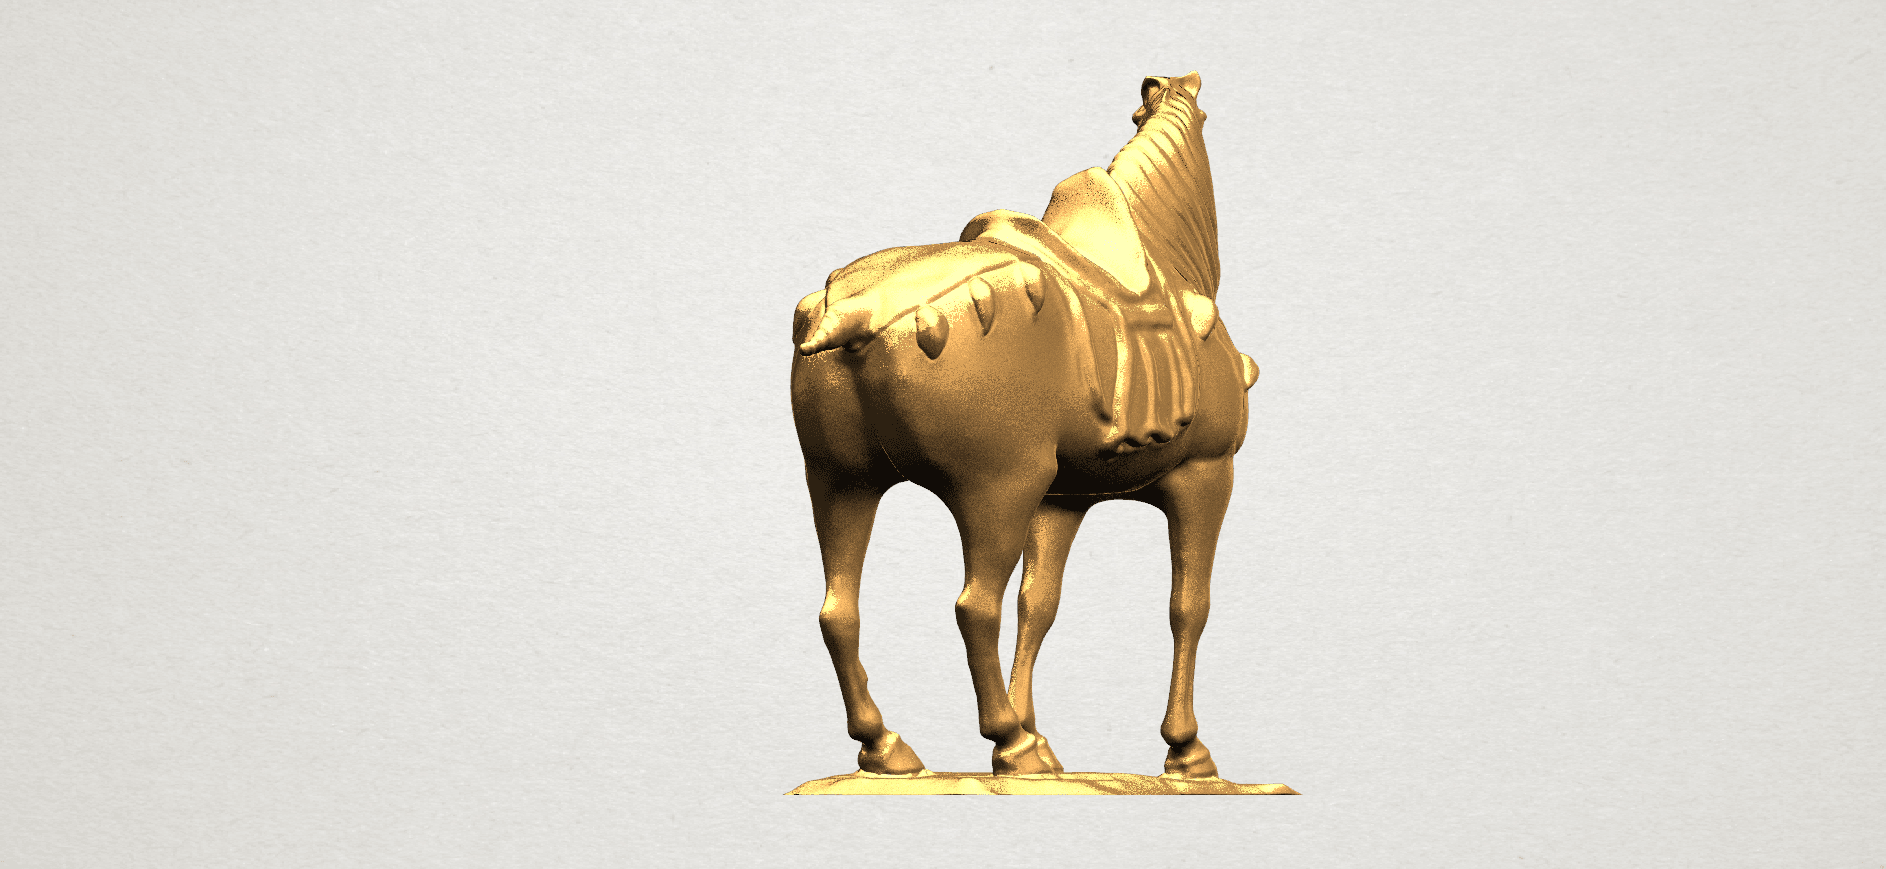 Horse (iv) A04.png Download free STL file Horse 04 • 3D print design, GeorgesNikkei